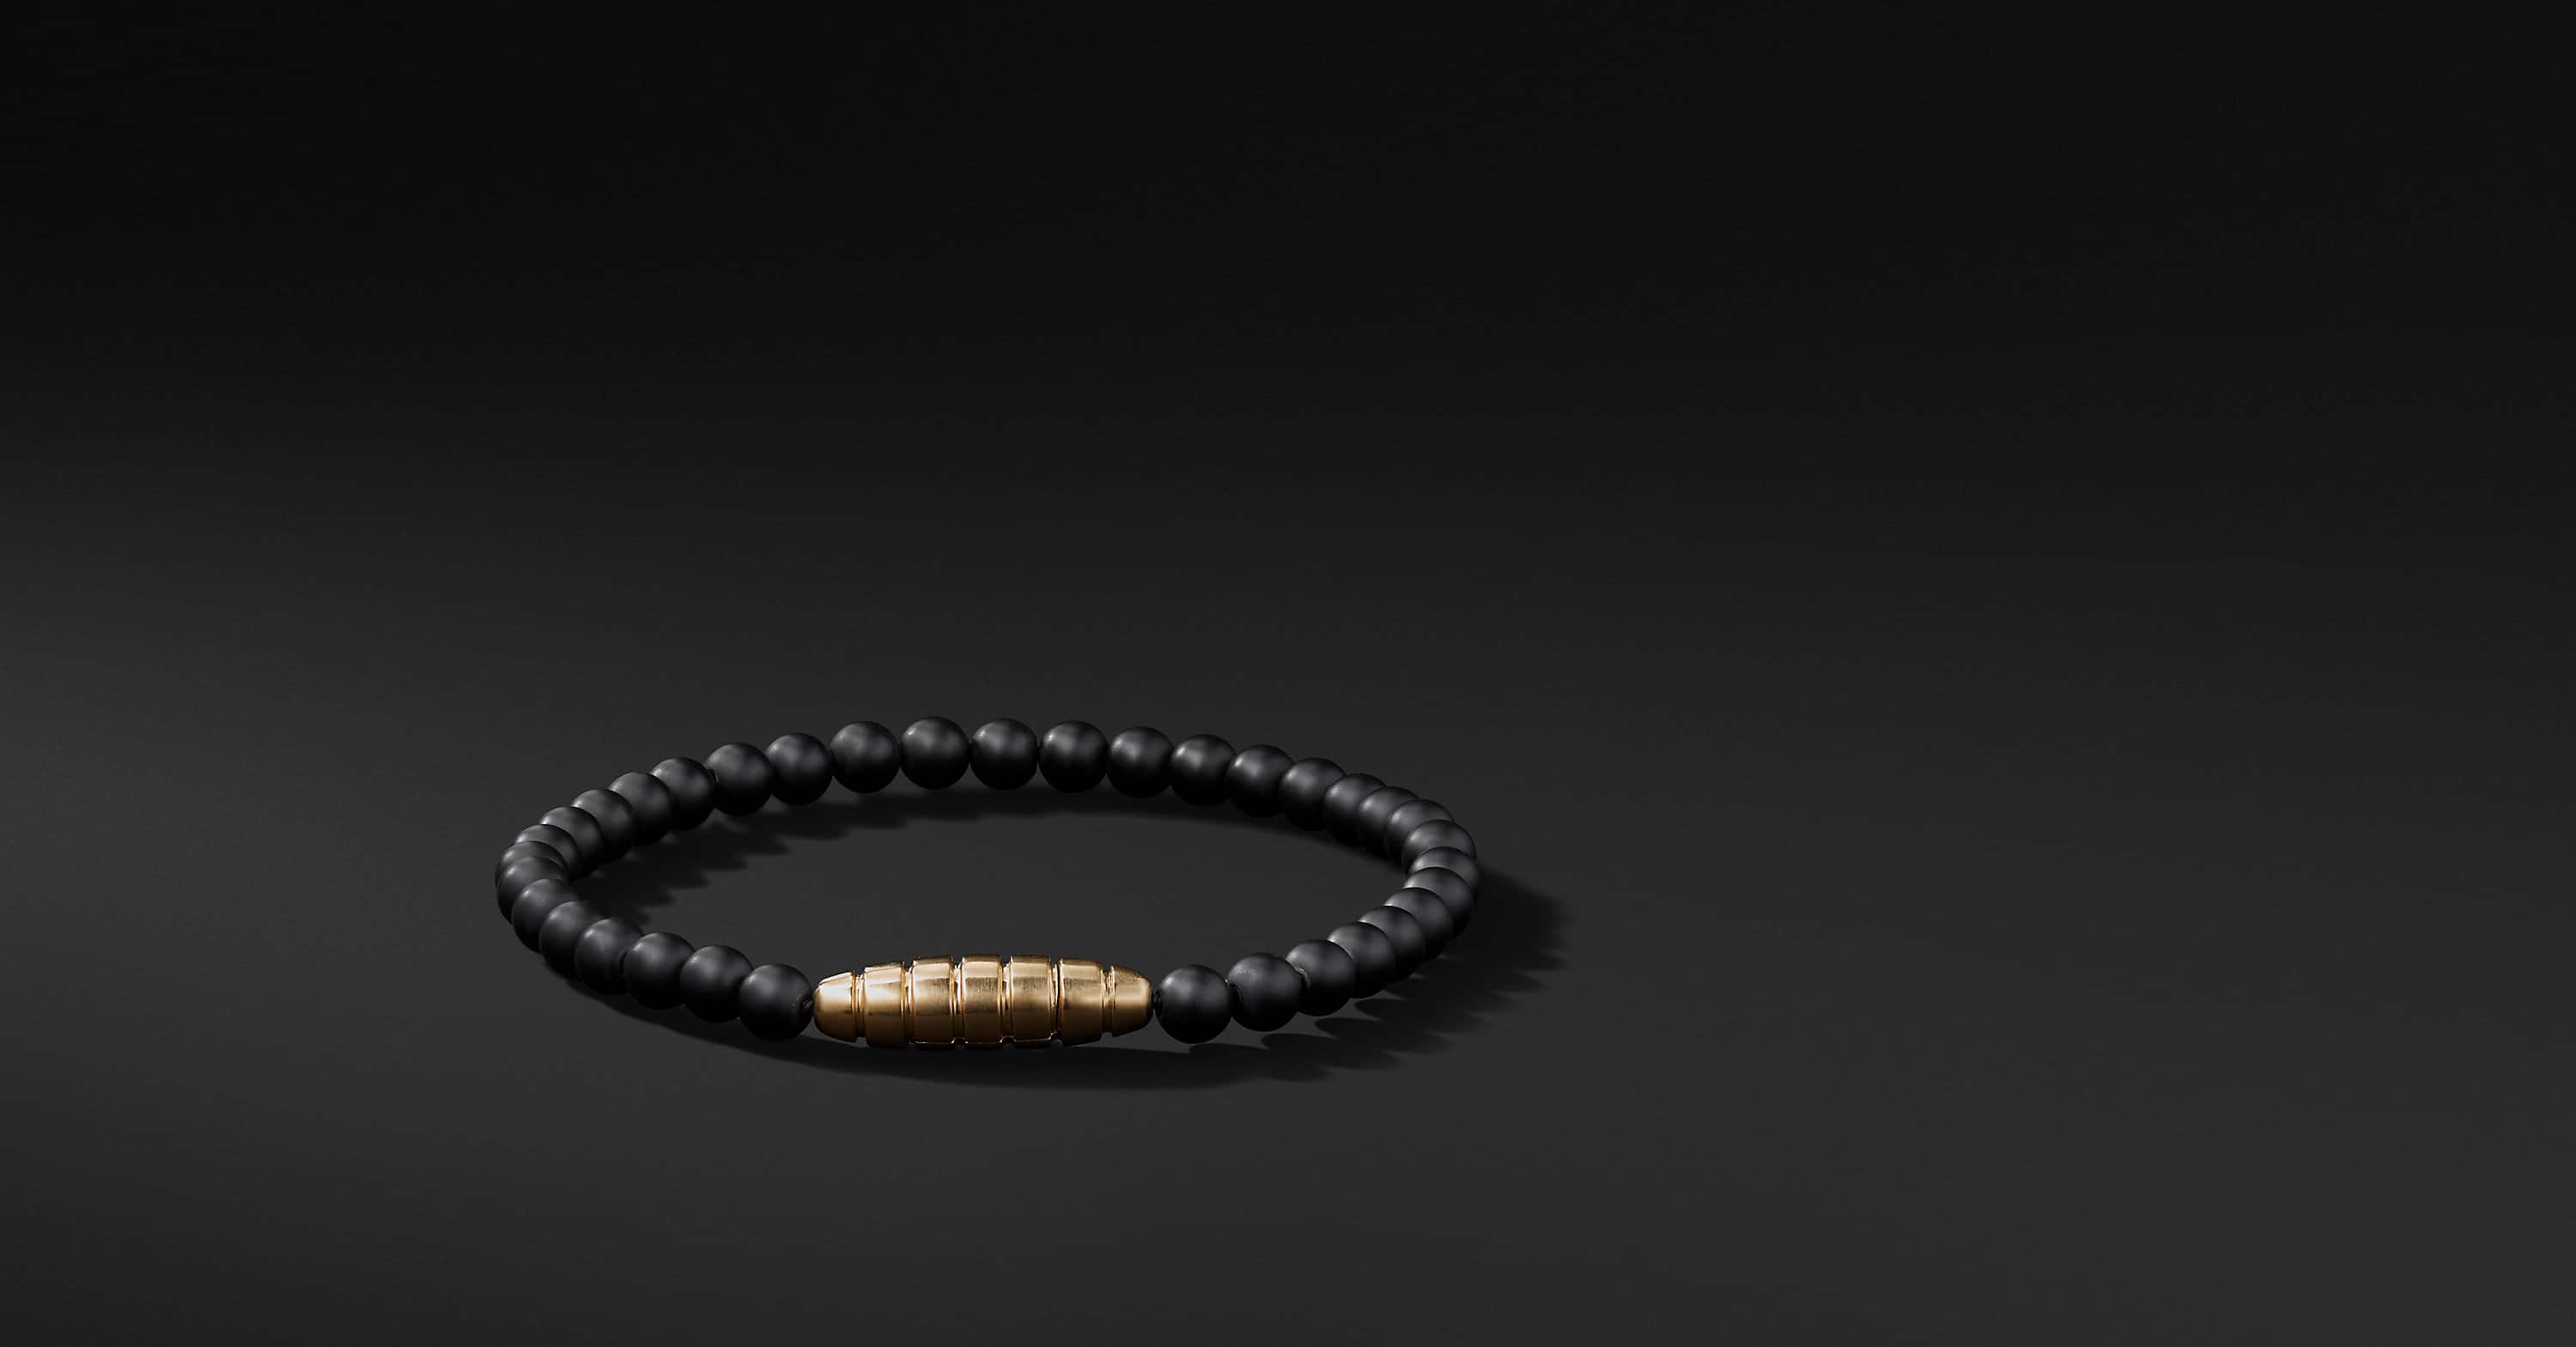 Southwest Bead Bracelet with 18K Gold